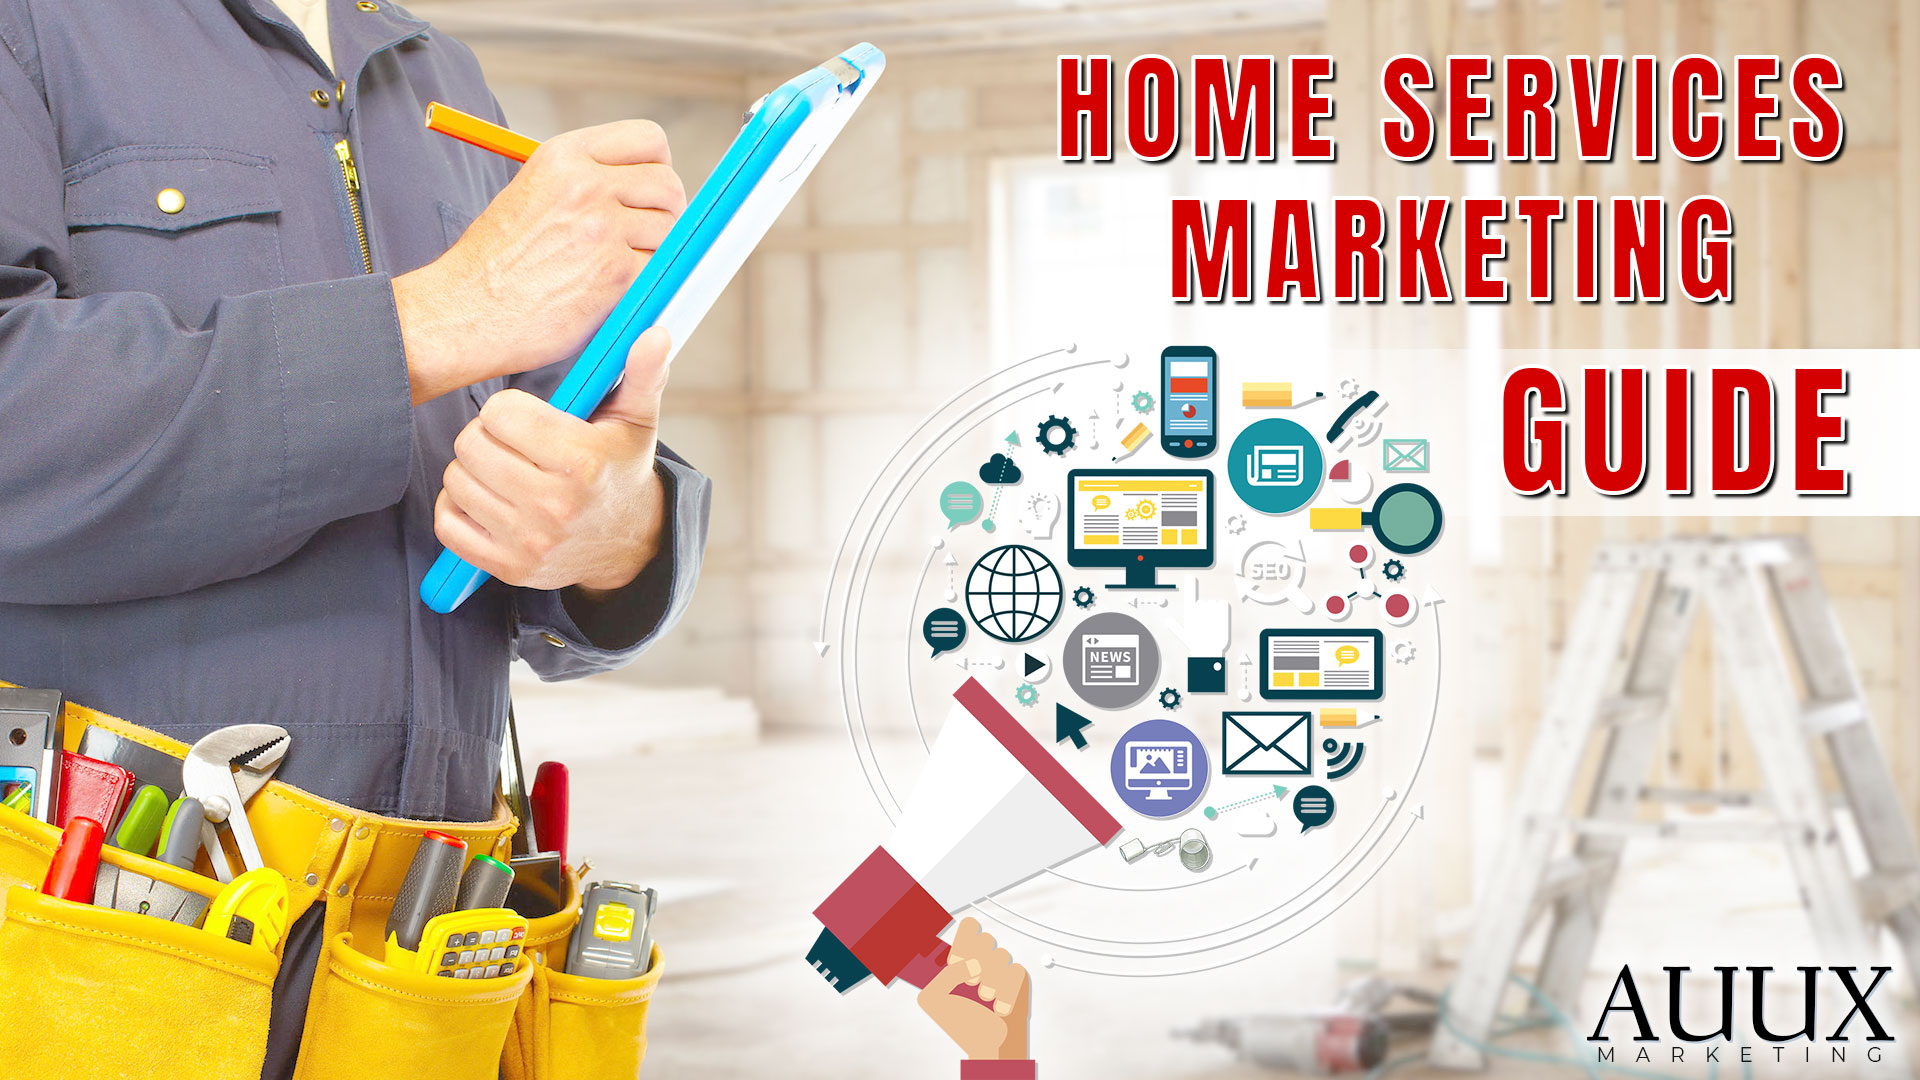 Home Services Marketing Guide